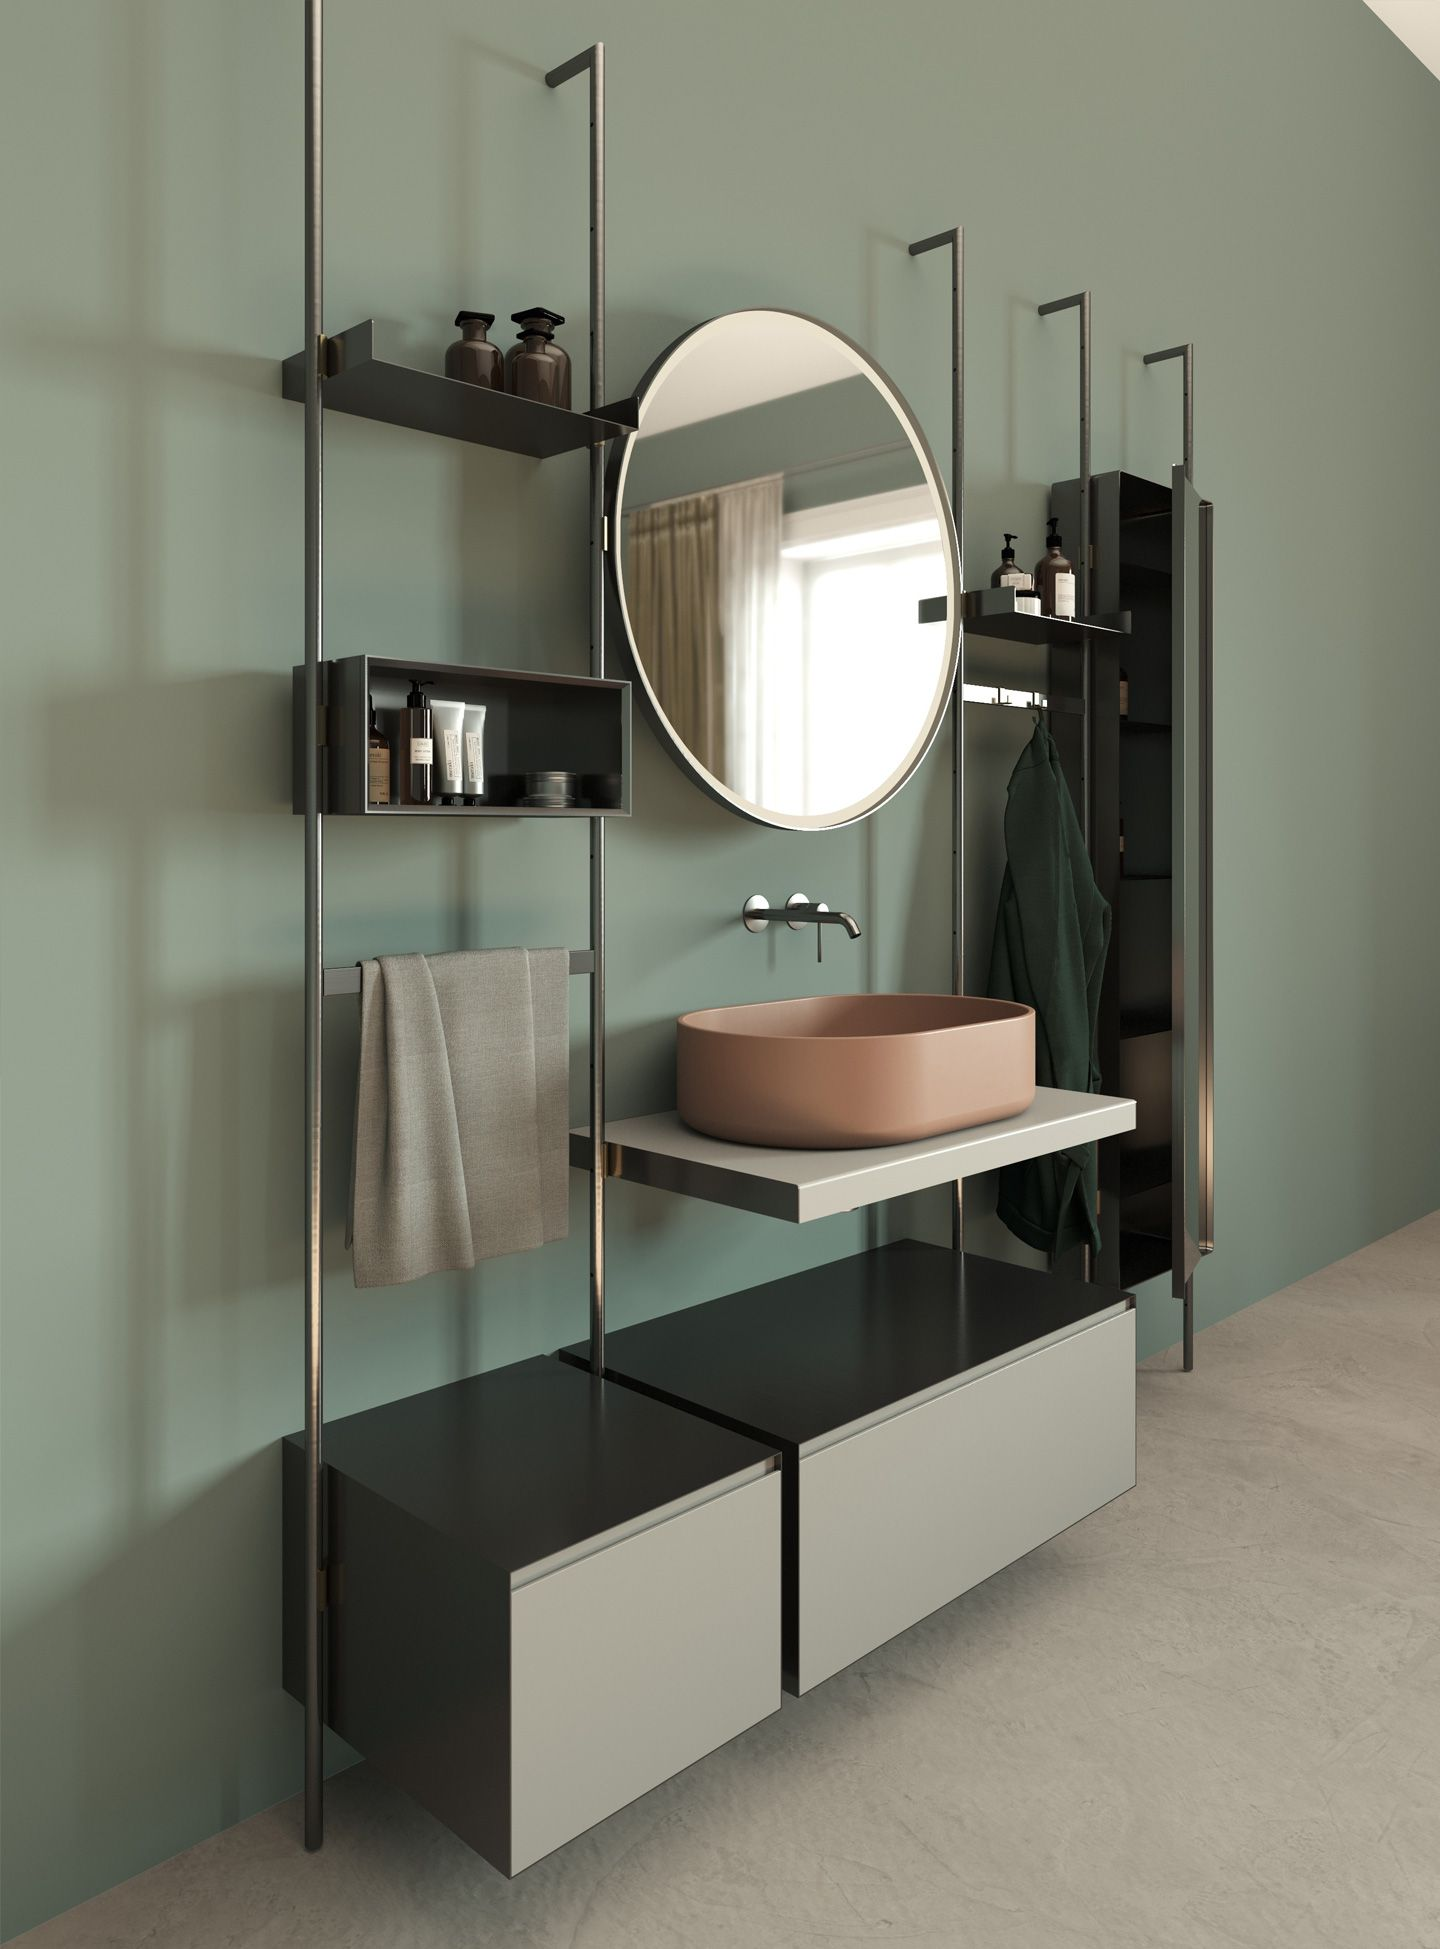 Contemporary Italian Modular Bathroom Vanity Shown In Termocotto